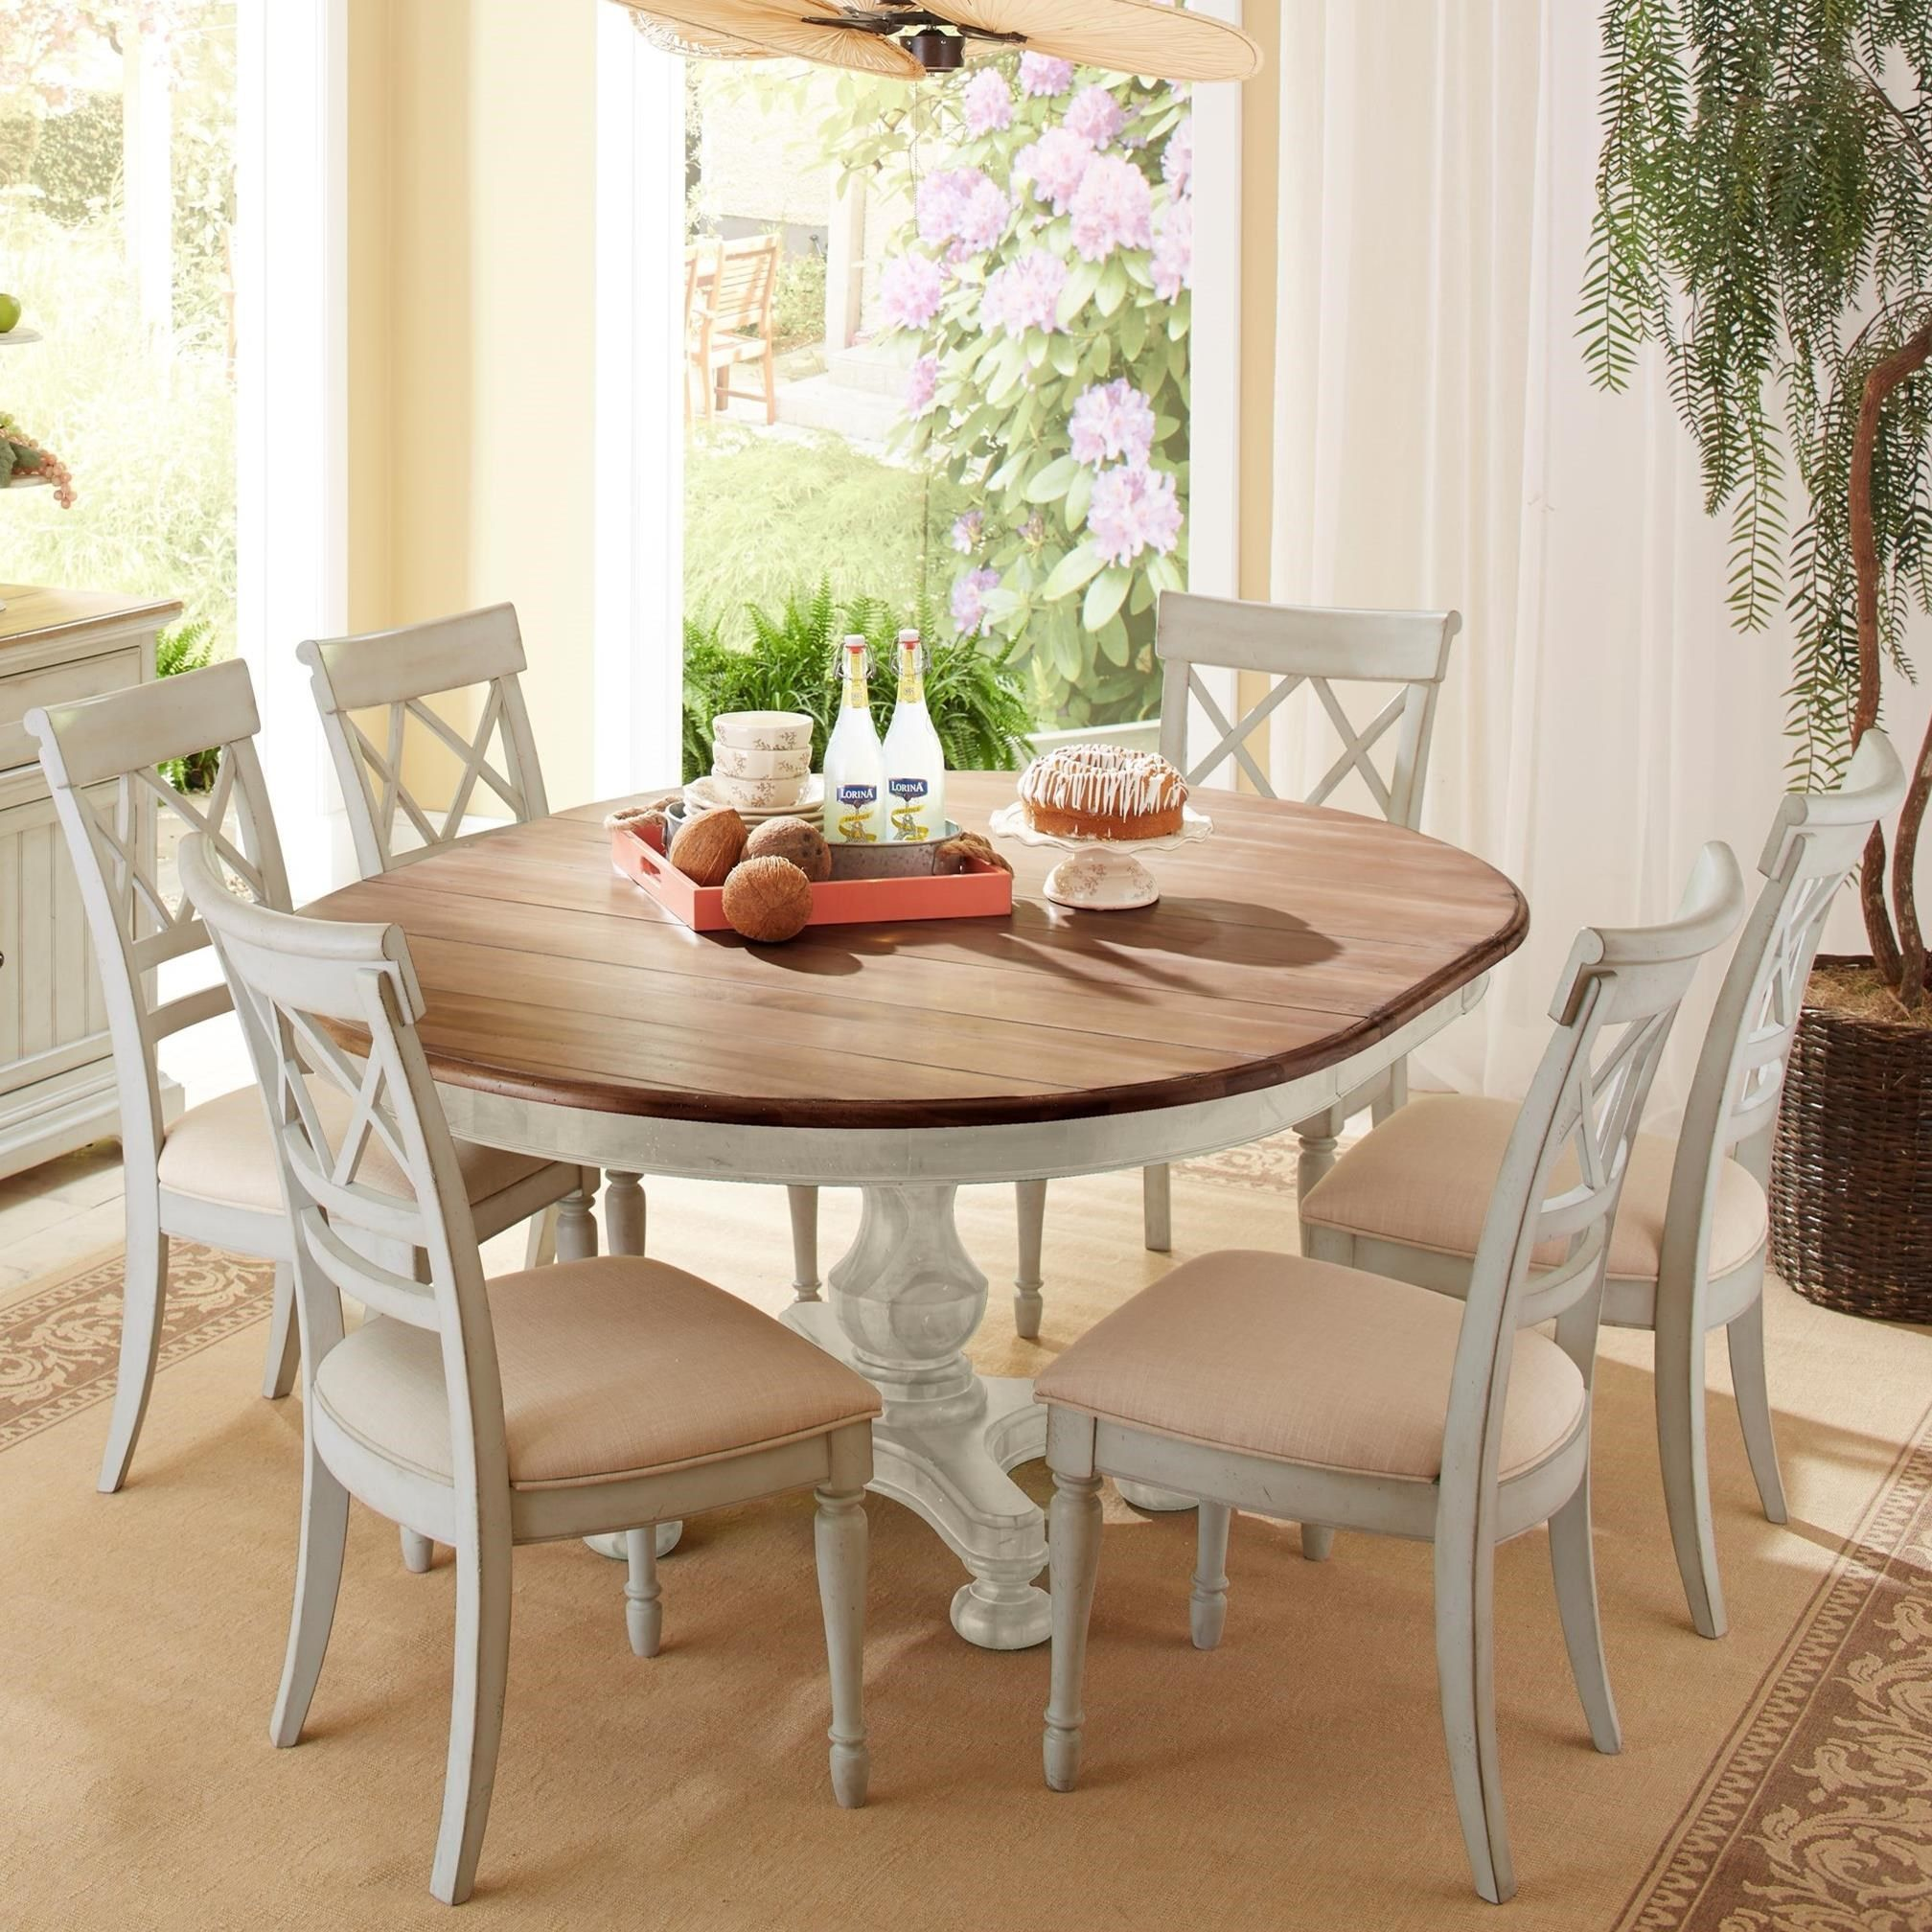 Cottage 7 Piece Round Table And Double X Back Chair Set By Cresent Fine Furniture Kitchen Table Settings Round Dining Table Dining Table